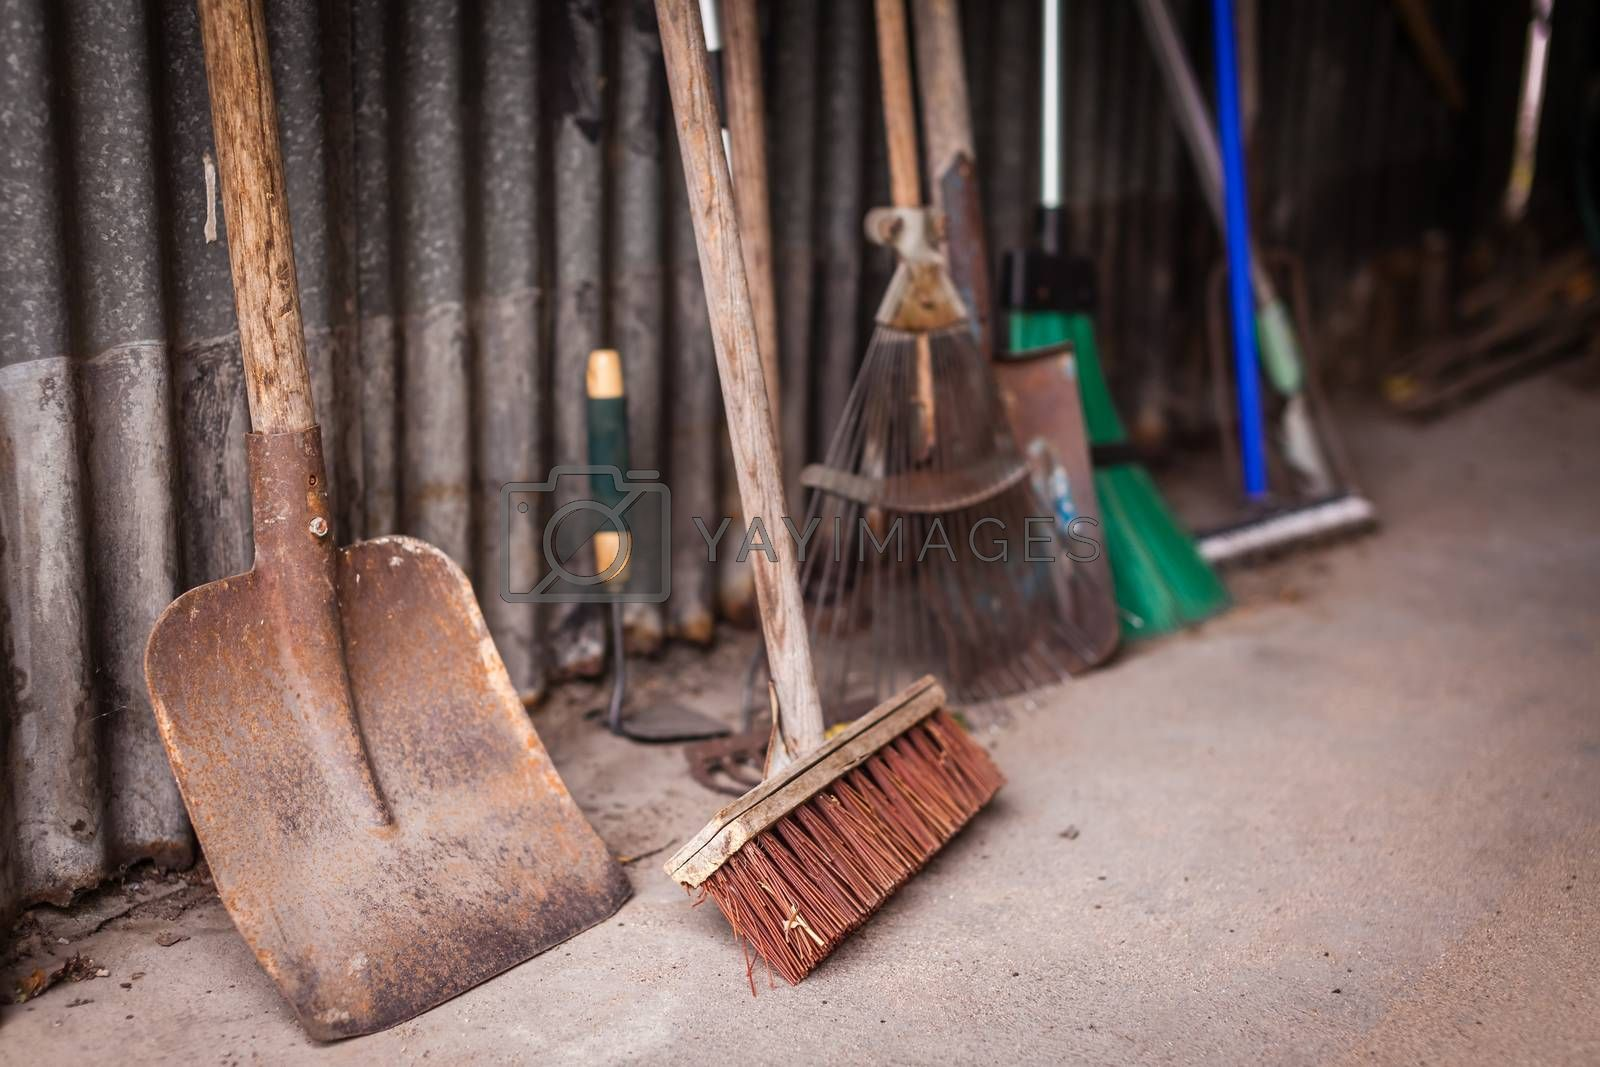 Old and rusted garden tools in an old garage